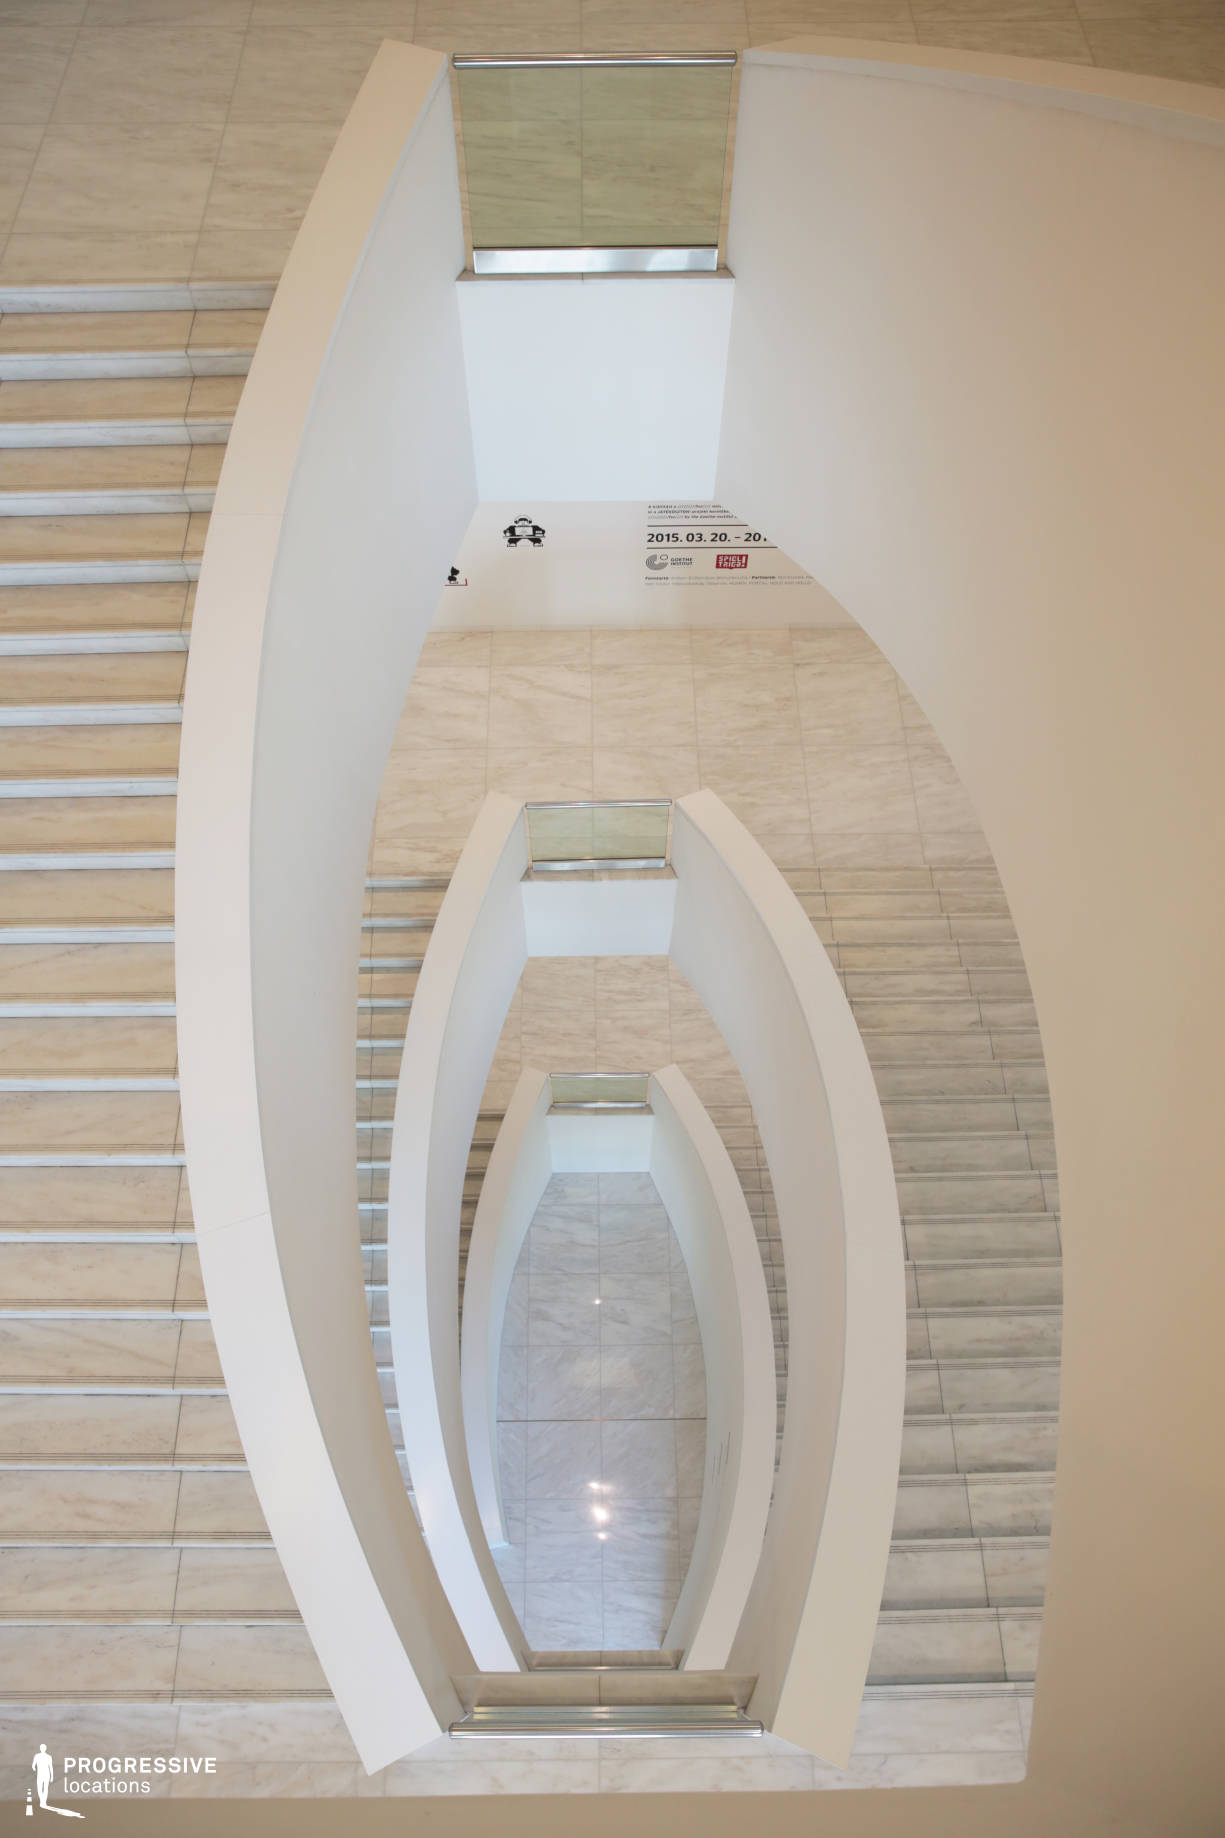 Locations in Hungary: Staircase, Ludwig Museum